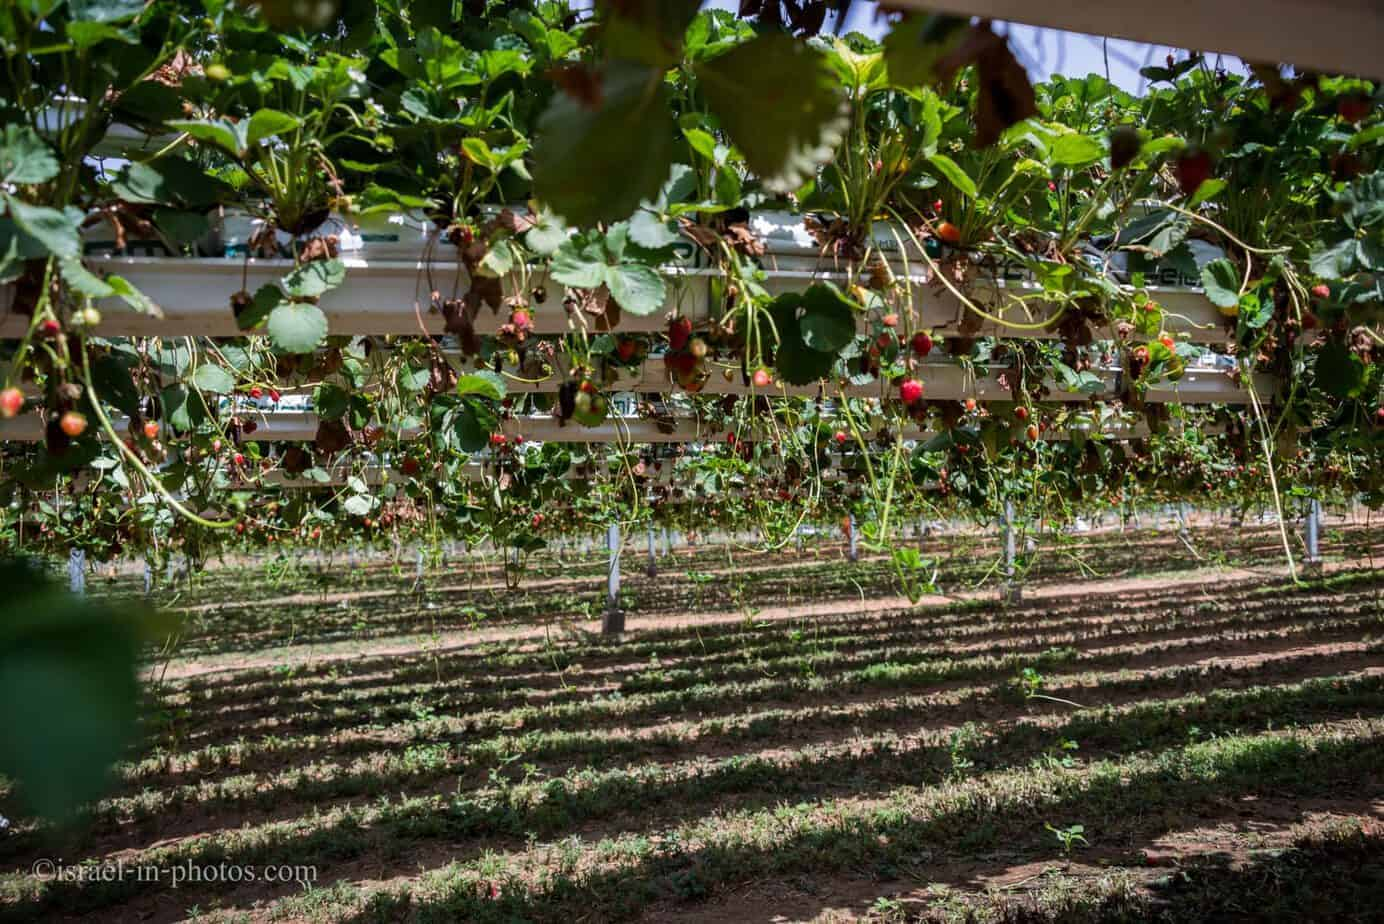 A look across the rows of strawberries